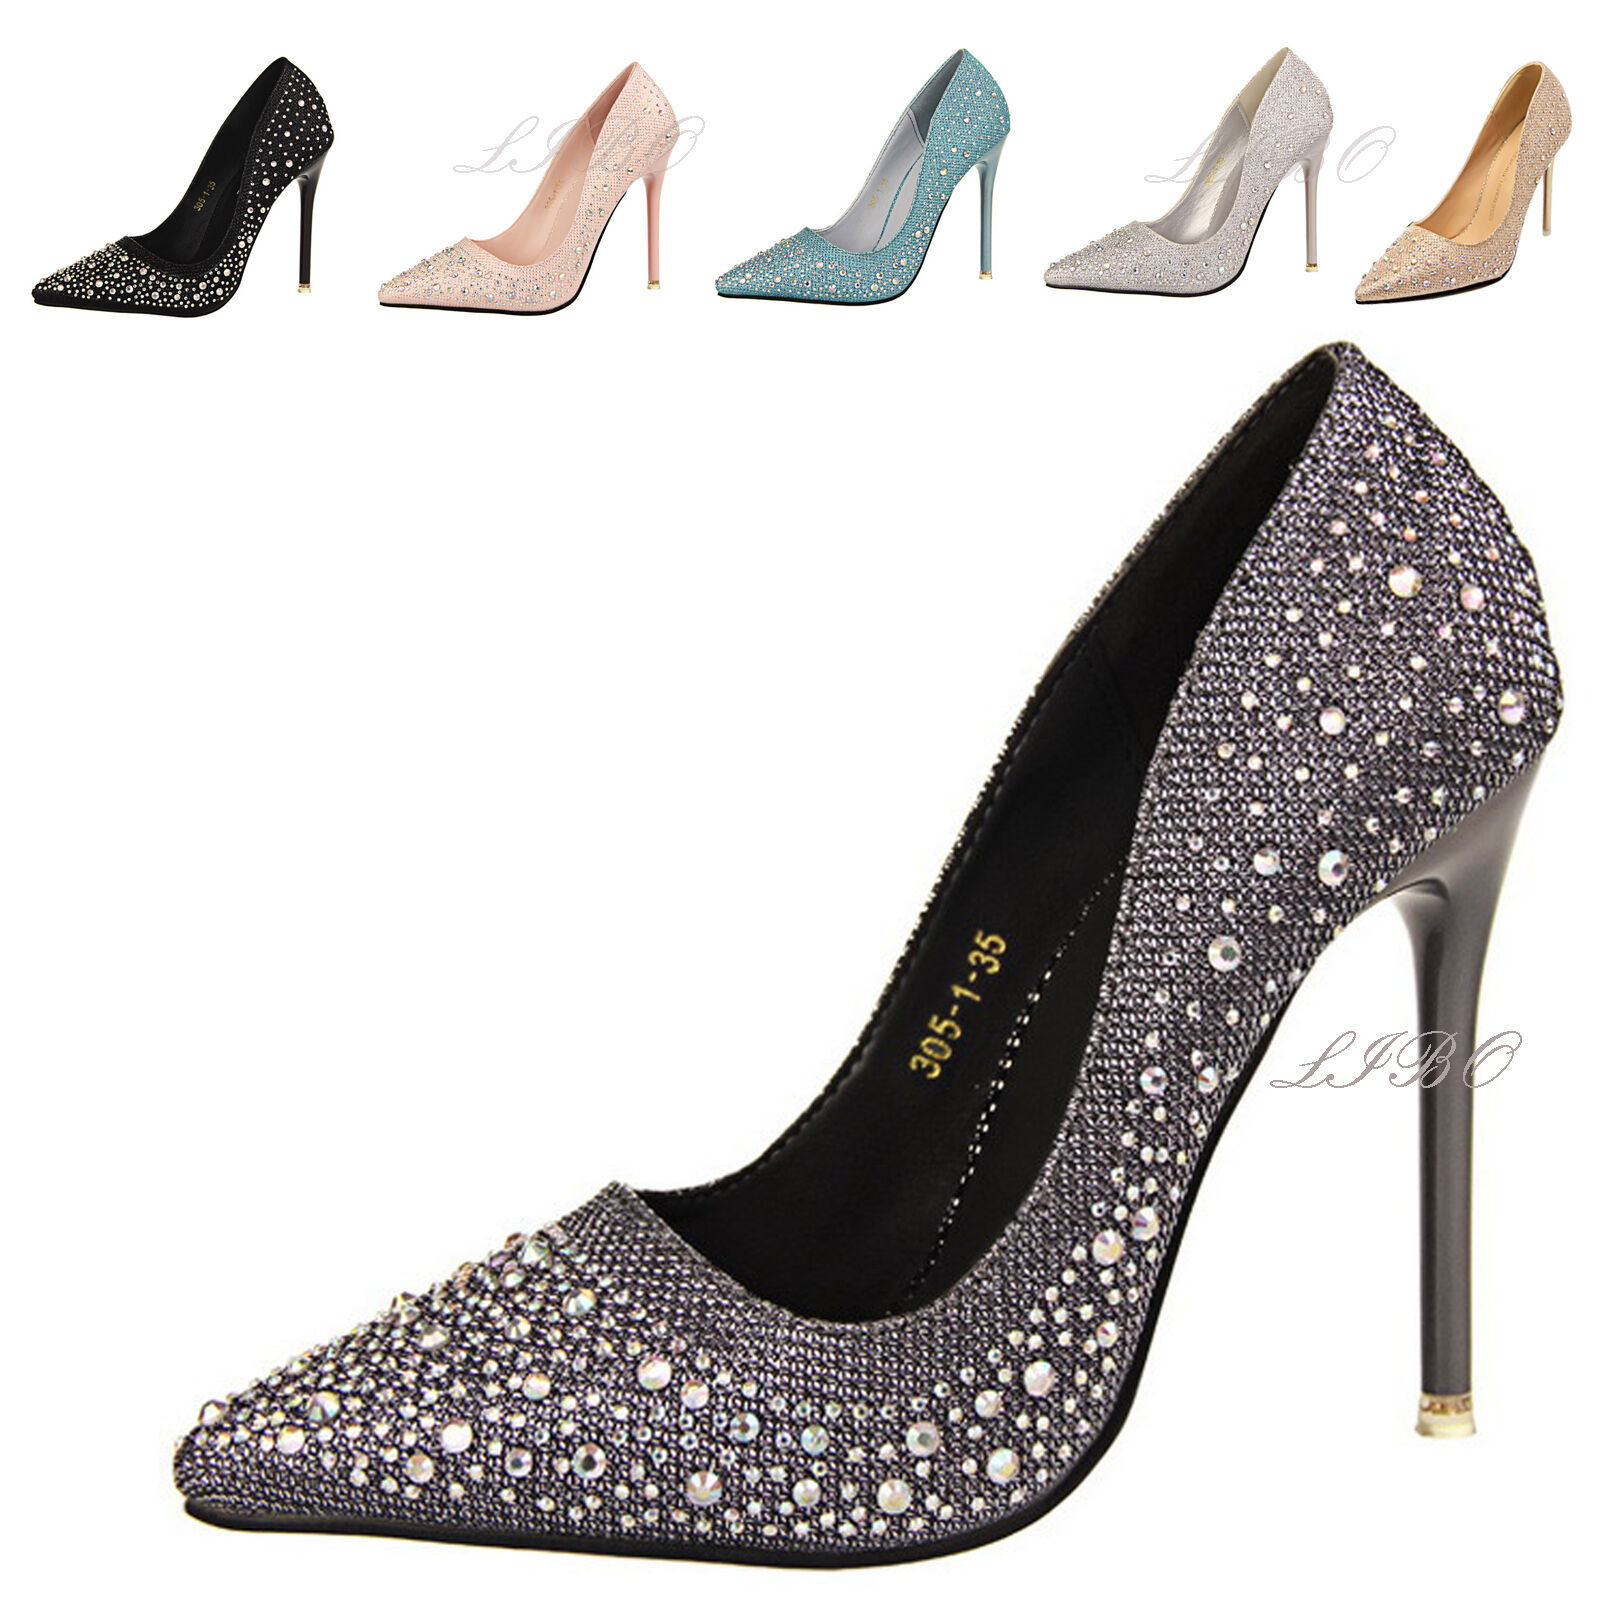 Sexy Womens Adult Rhinestone Shoes Platform Stiletto High